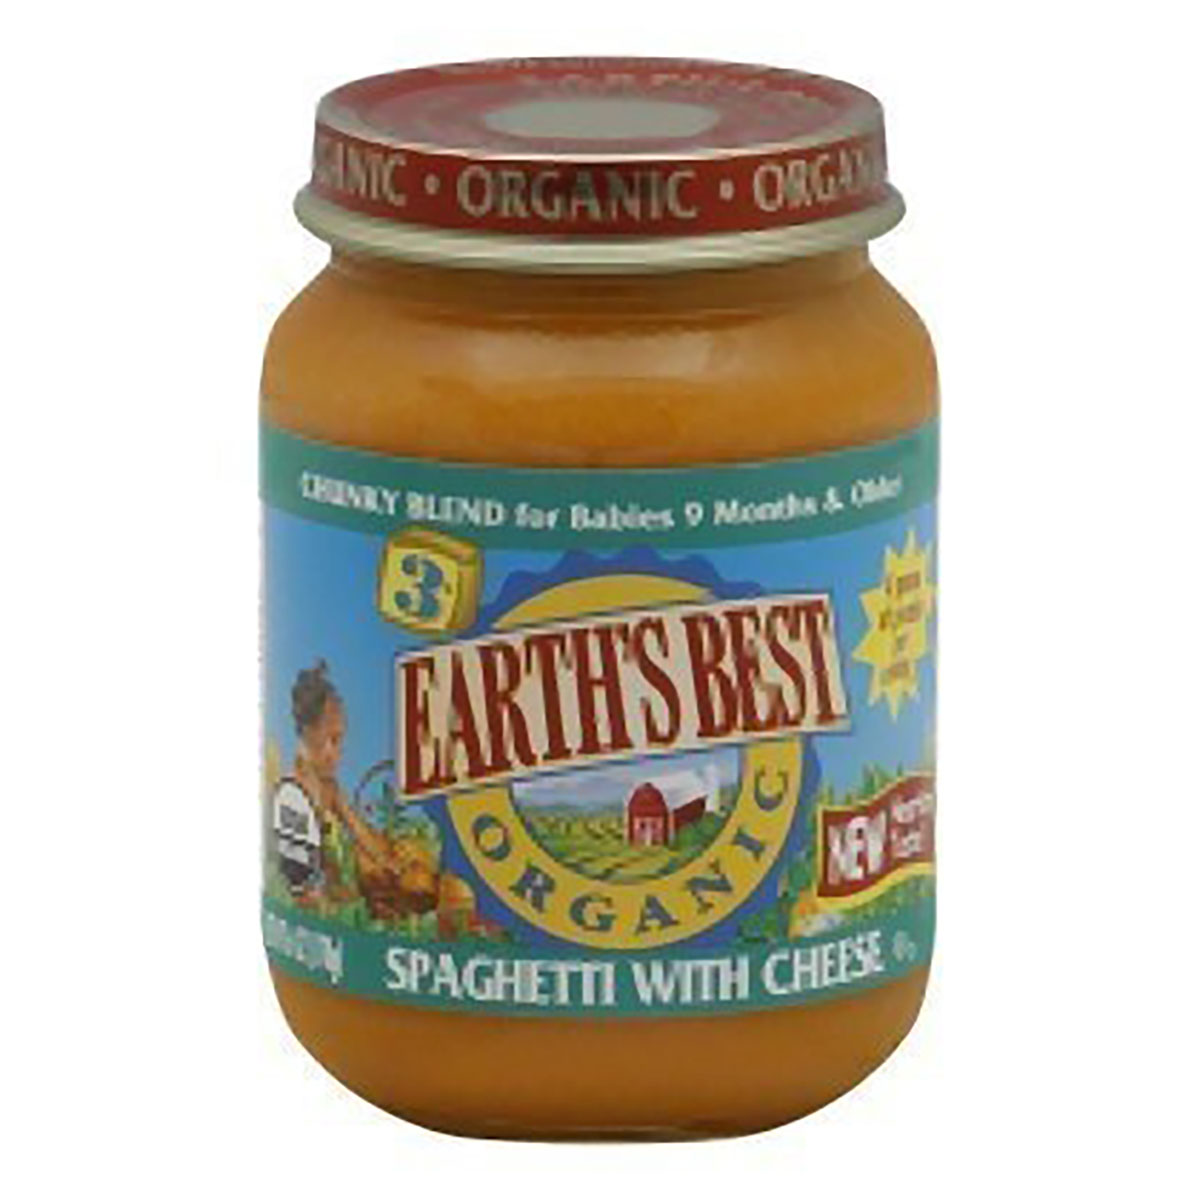 Earth's Best Organic Spaghetti with Cheese Stage 3, 6.0 OZ